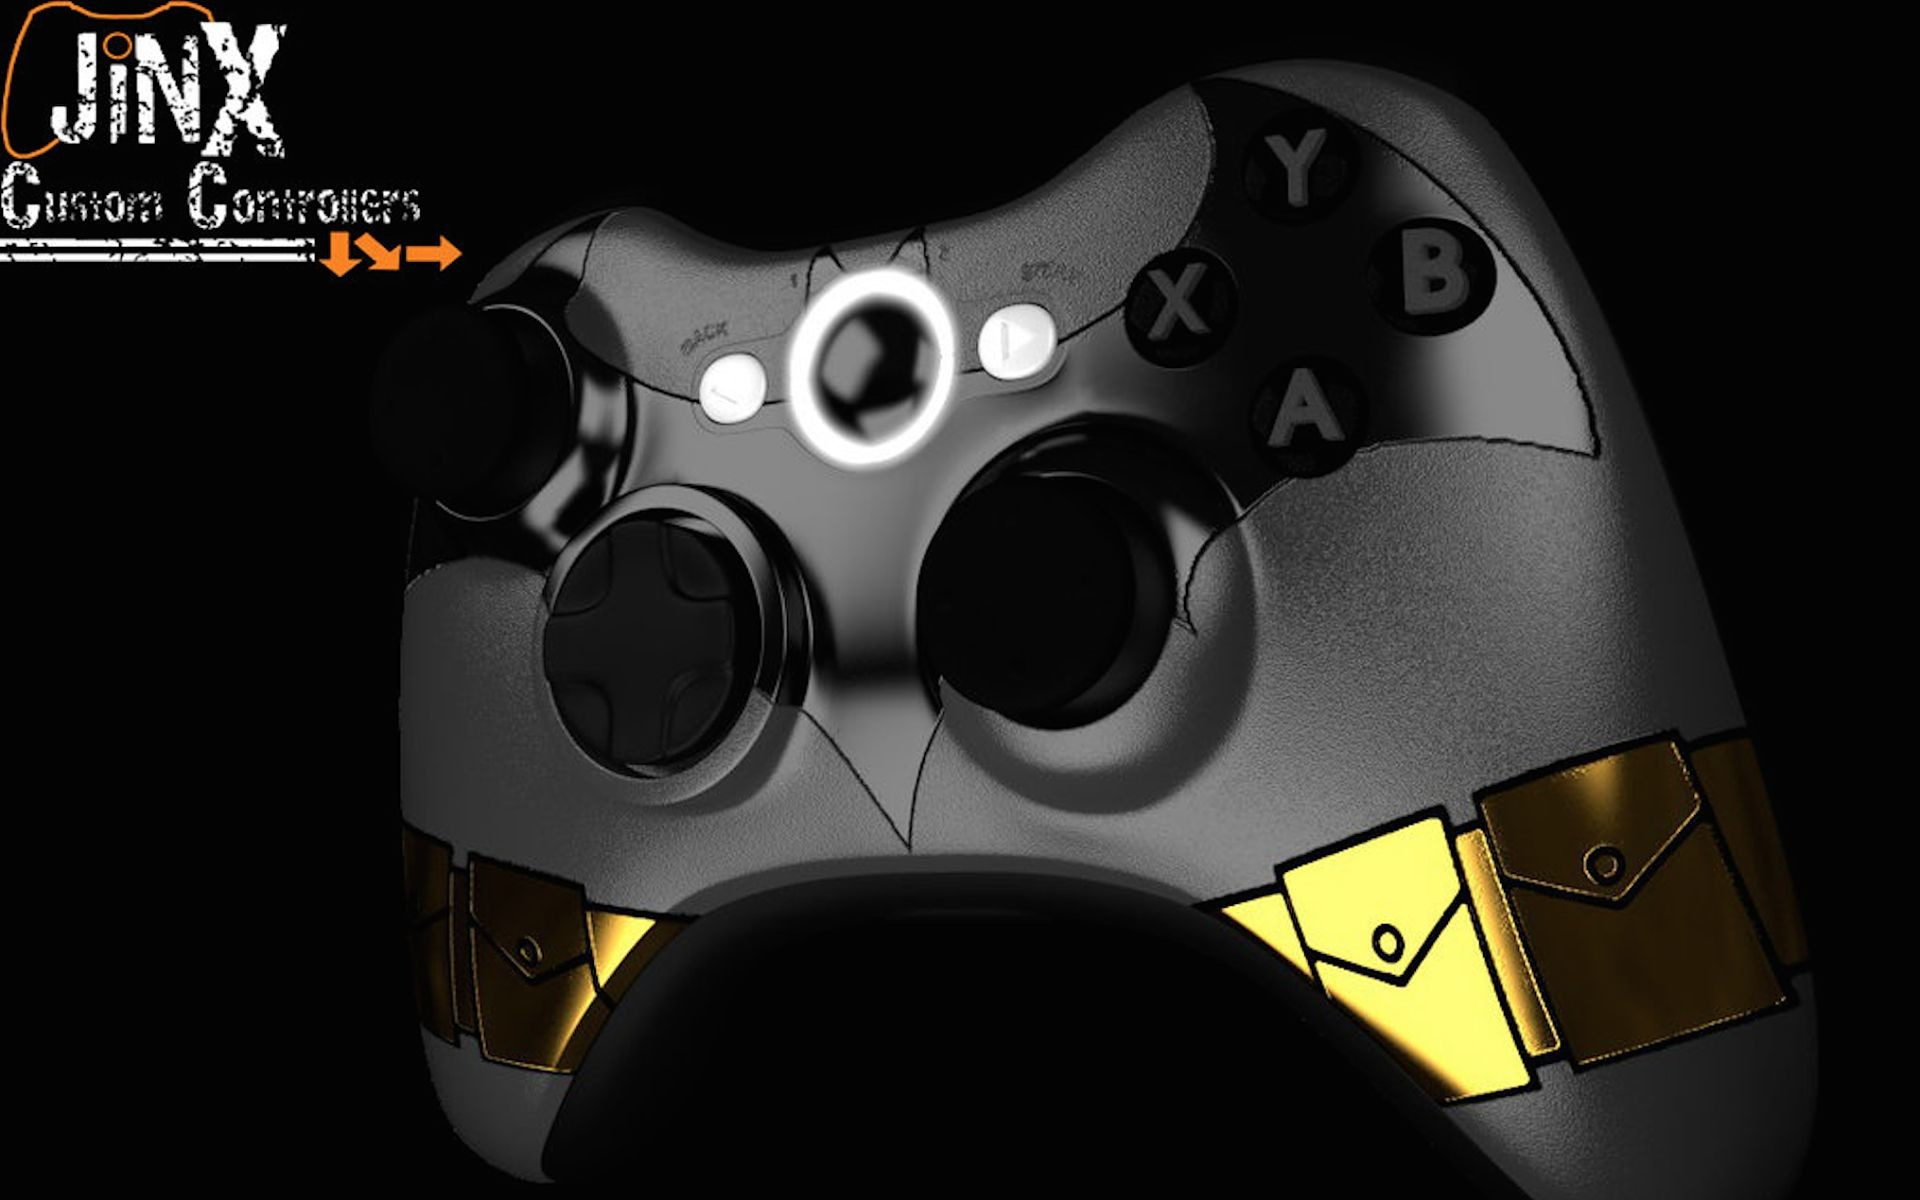 Res: 1920x1200, Batman Custom Xbox Controller Wallpaper - Wallpapers UK - Backgrounds For  all your Devices!